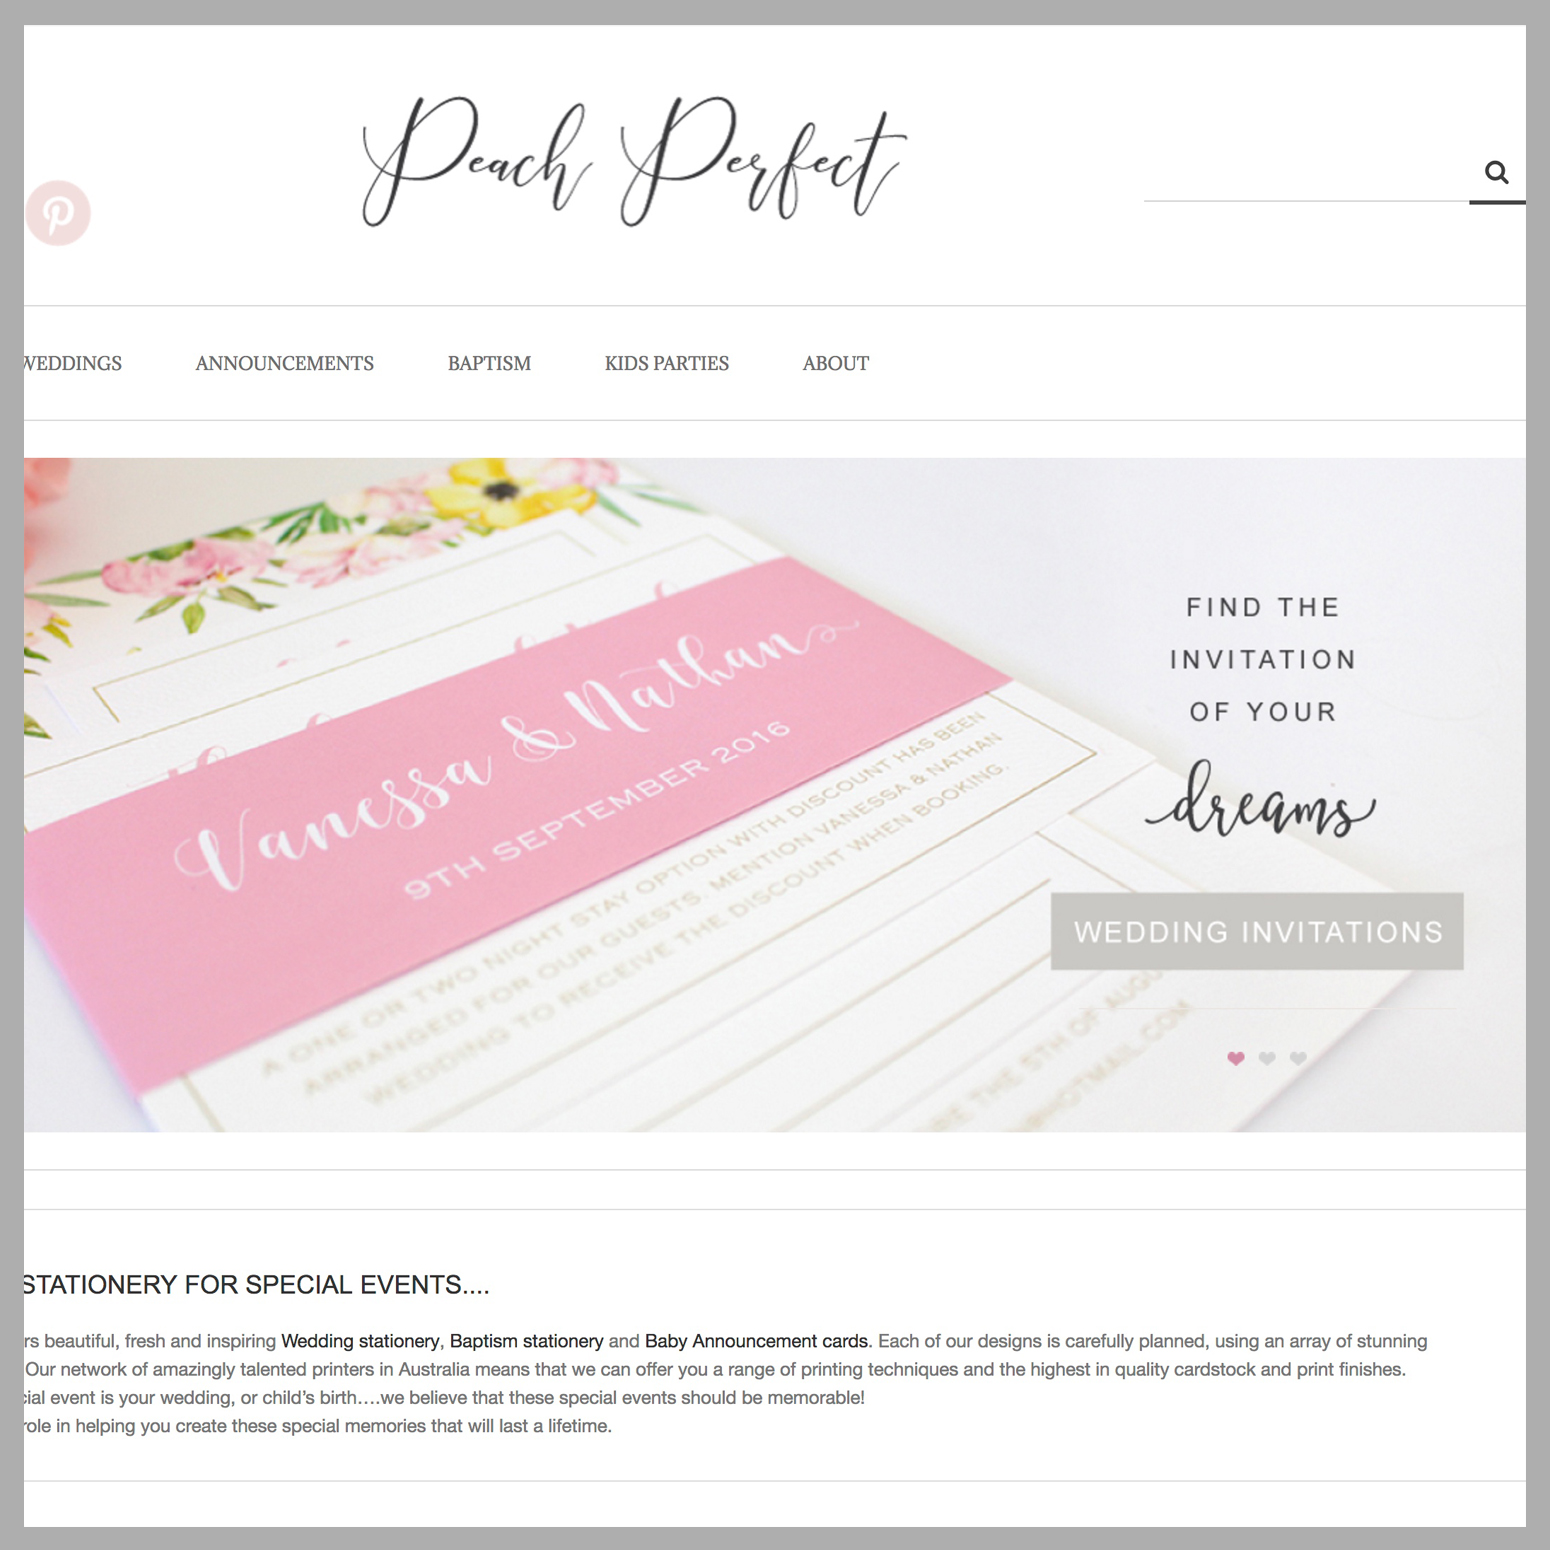 Peach Perfect Stationary